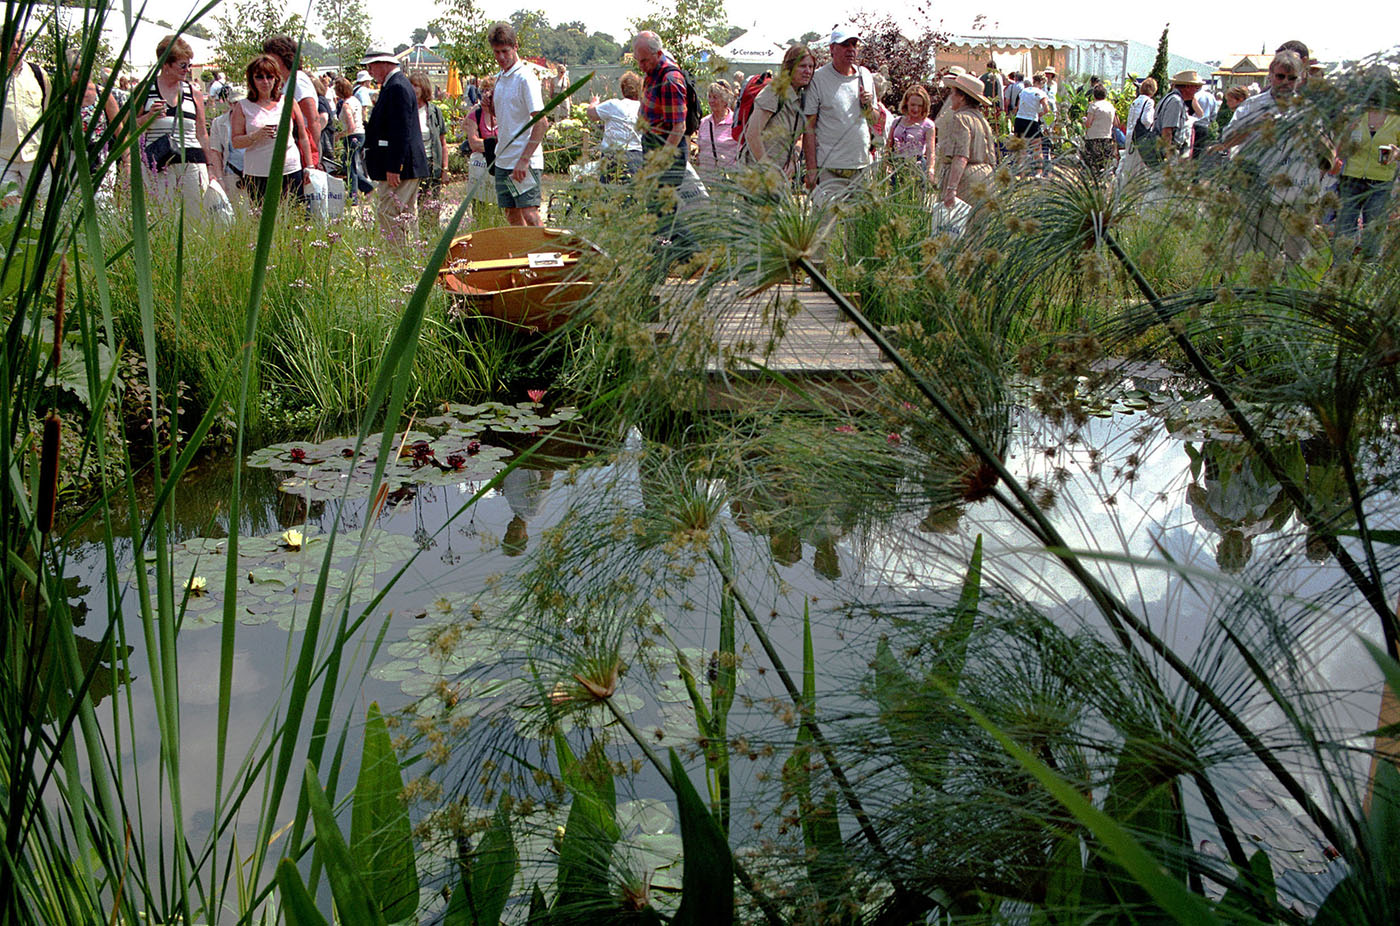 Visitors attend the Royal Horticultural Society's annual Hampton Court Palace Flower Show